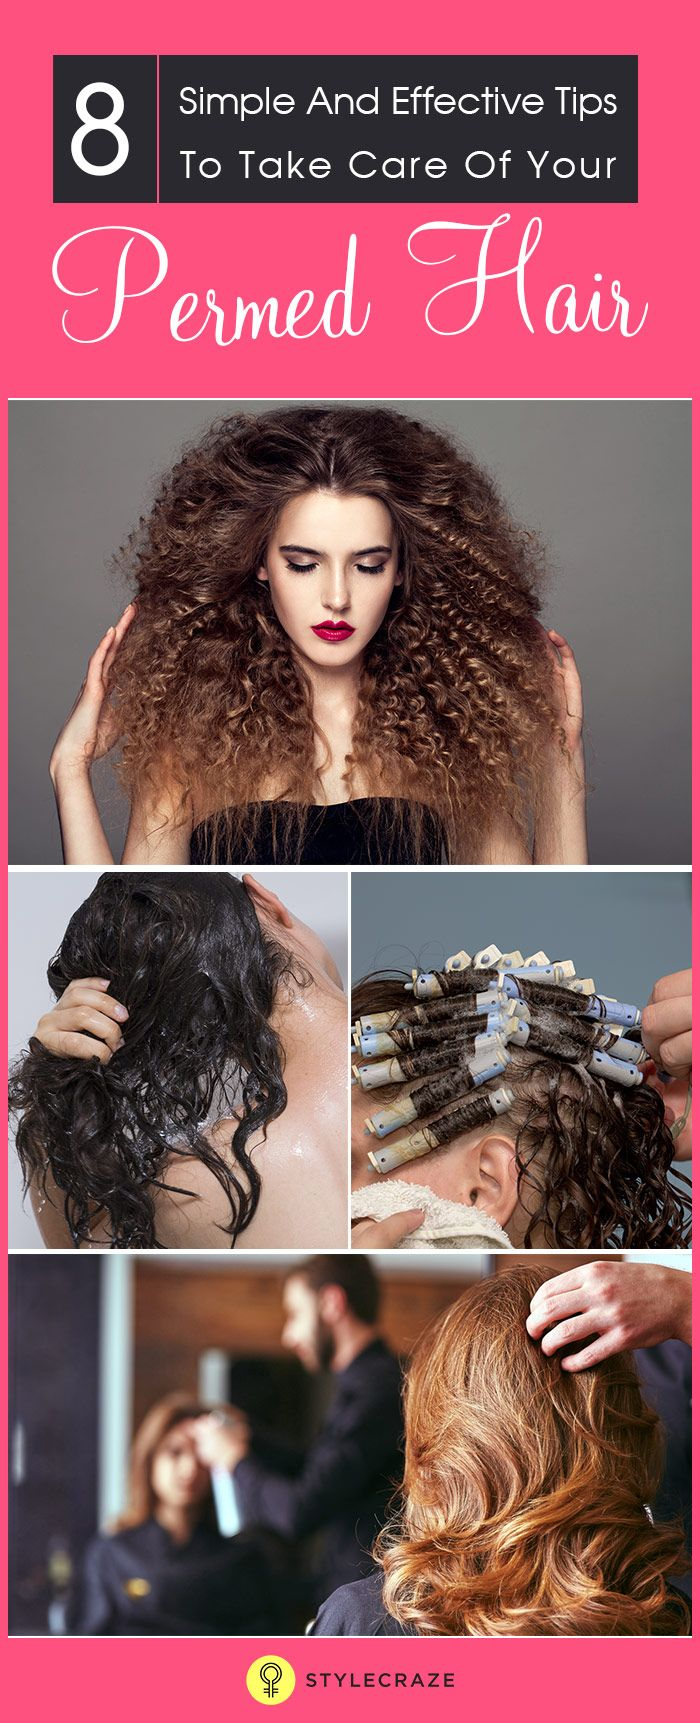 Straight perm yahoo answers - 8 Simple And Effective Tips To Take Care Of Your Permed Hair